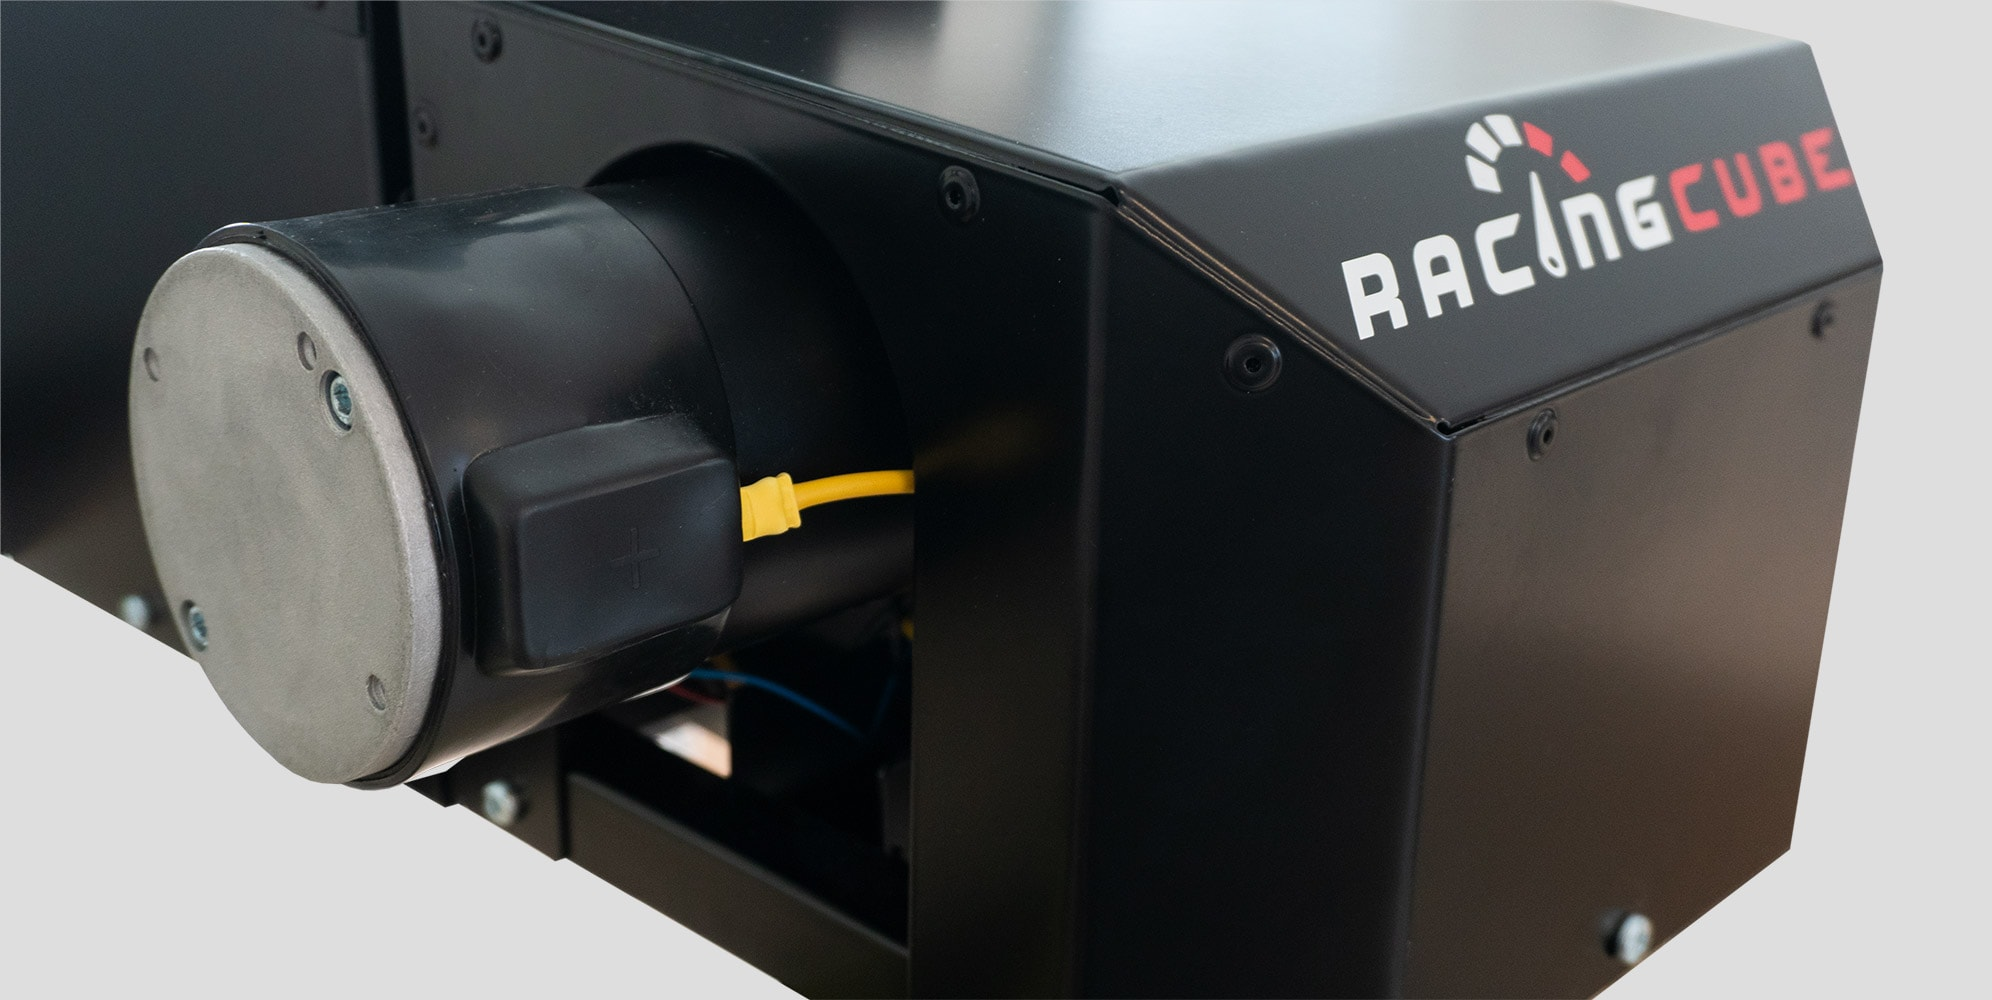 About RacingCUBE - Explore the RacingCUBE Motion Simulator